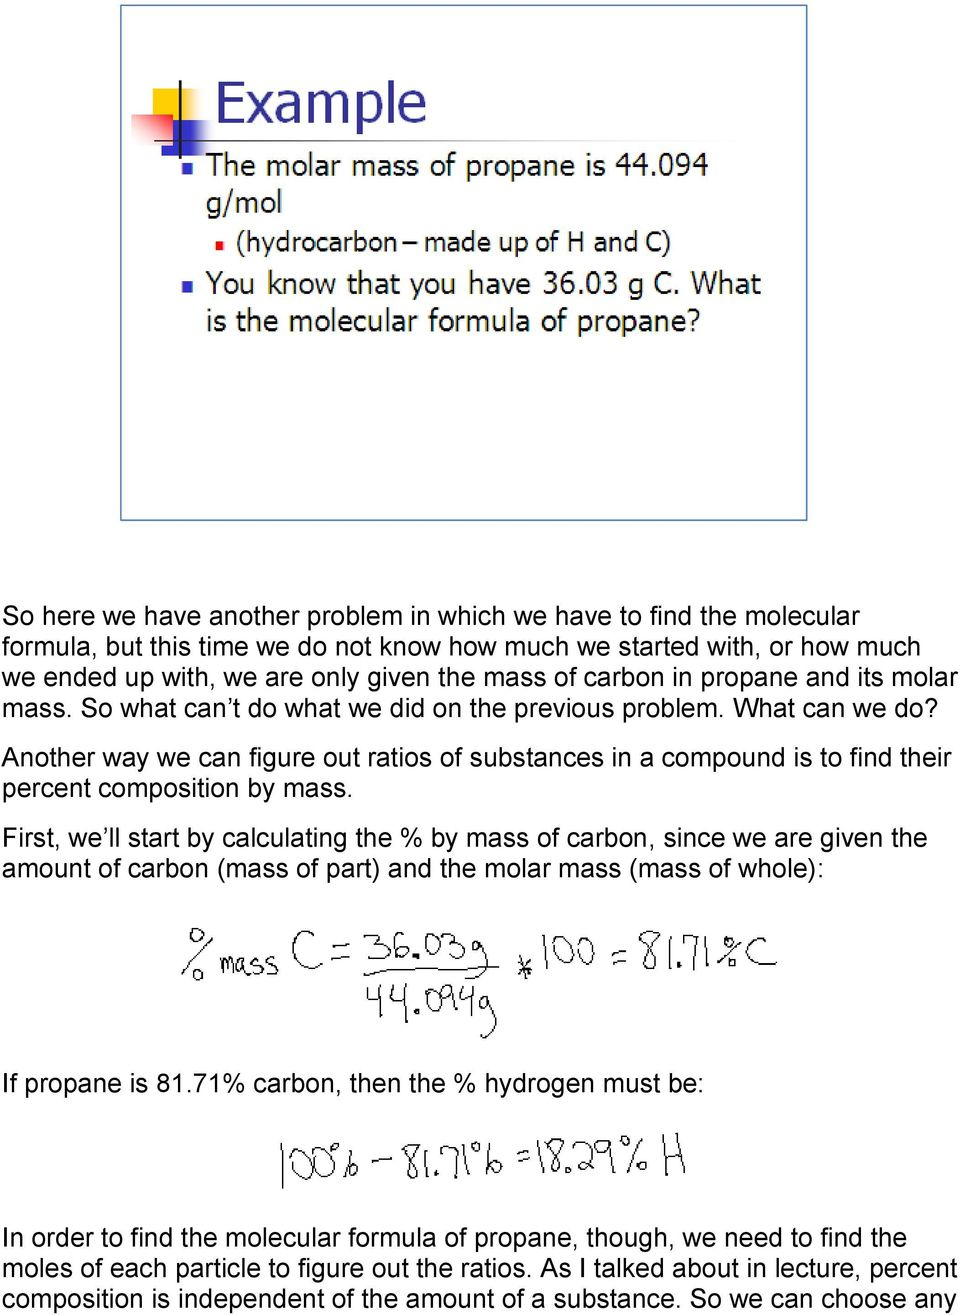 Another way we can figure out ratios of substances in a compound is to find their percent composition by mass.